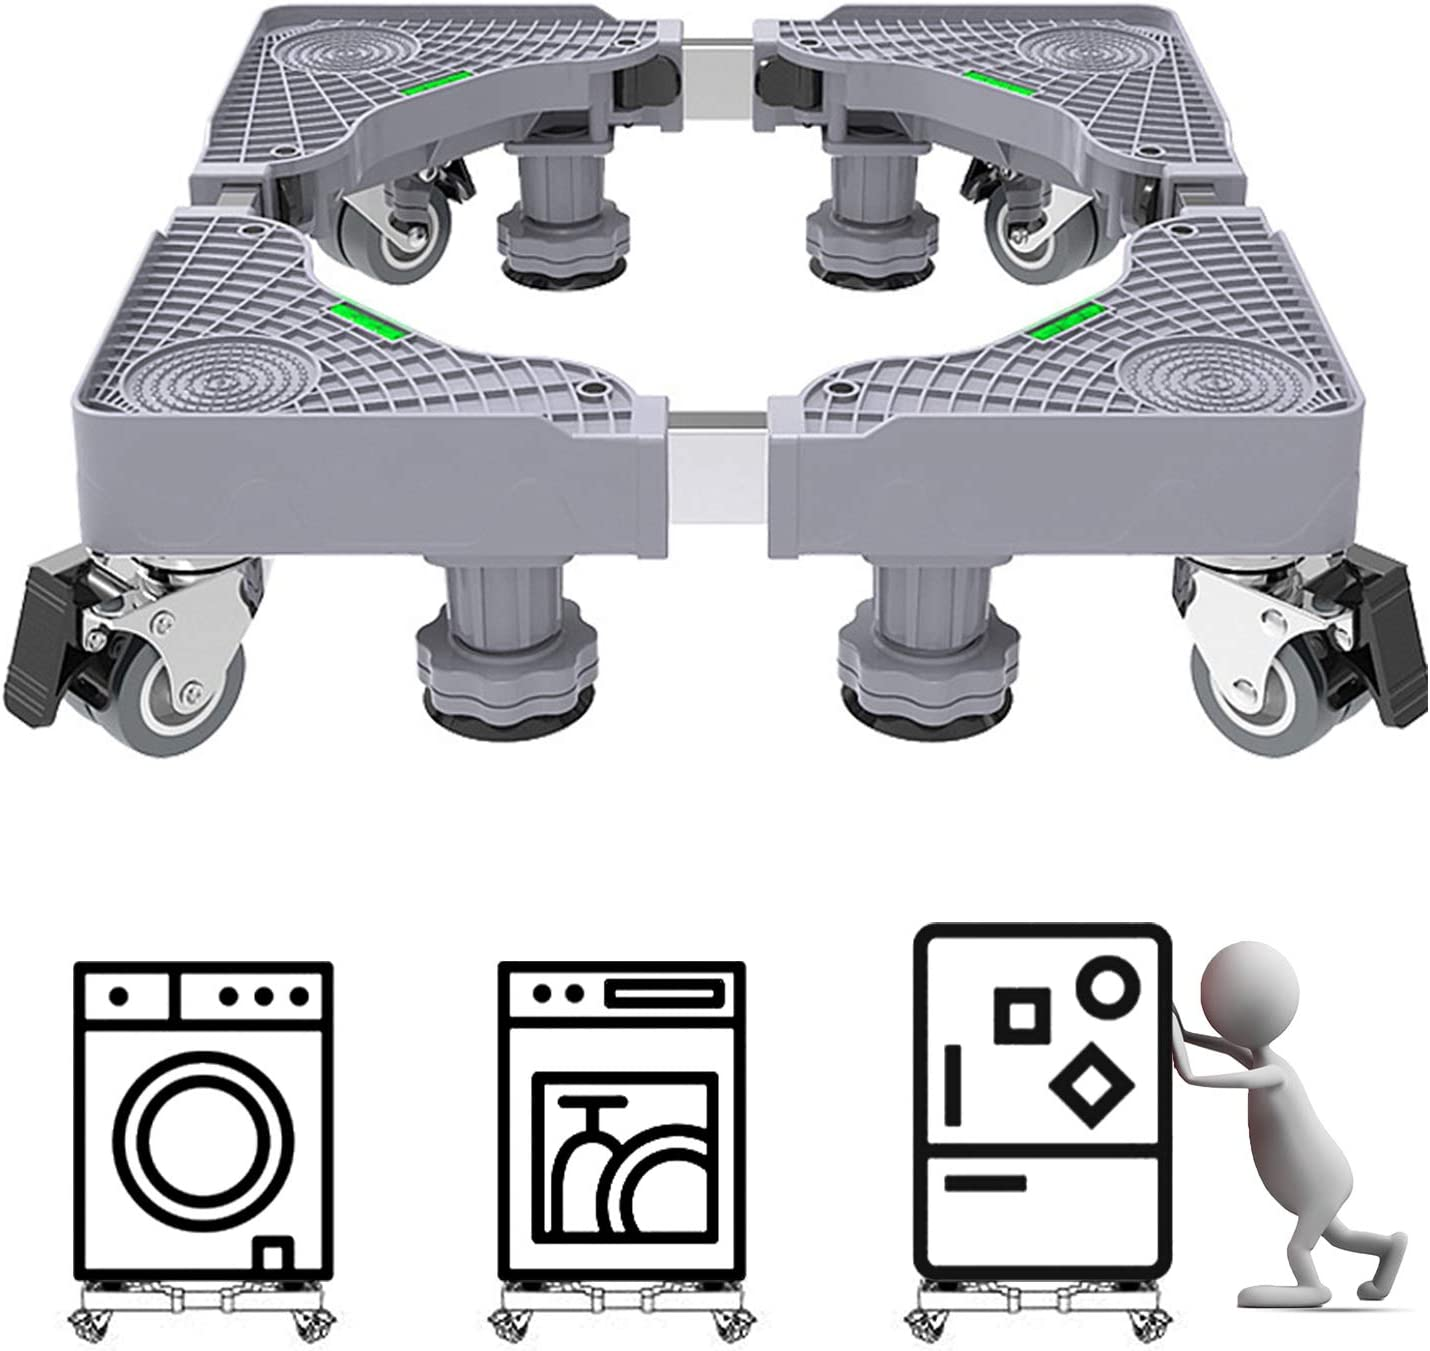 OHOH Adjustable Mobile Washing Machine Base with 4 Wheels Swivel Casters Locking /& 4 Lifting Feet Adjustable Washing Machine Stand Base Mobile Roller for Furniture